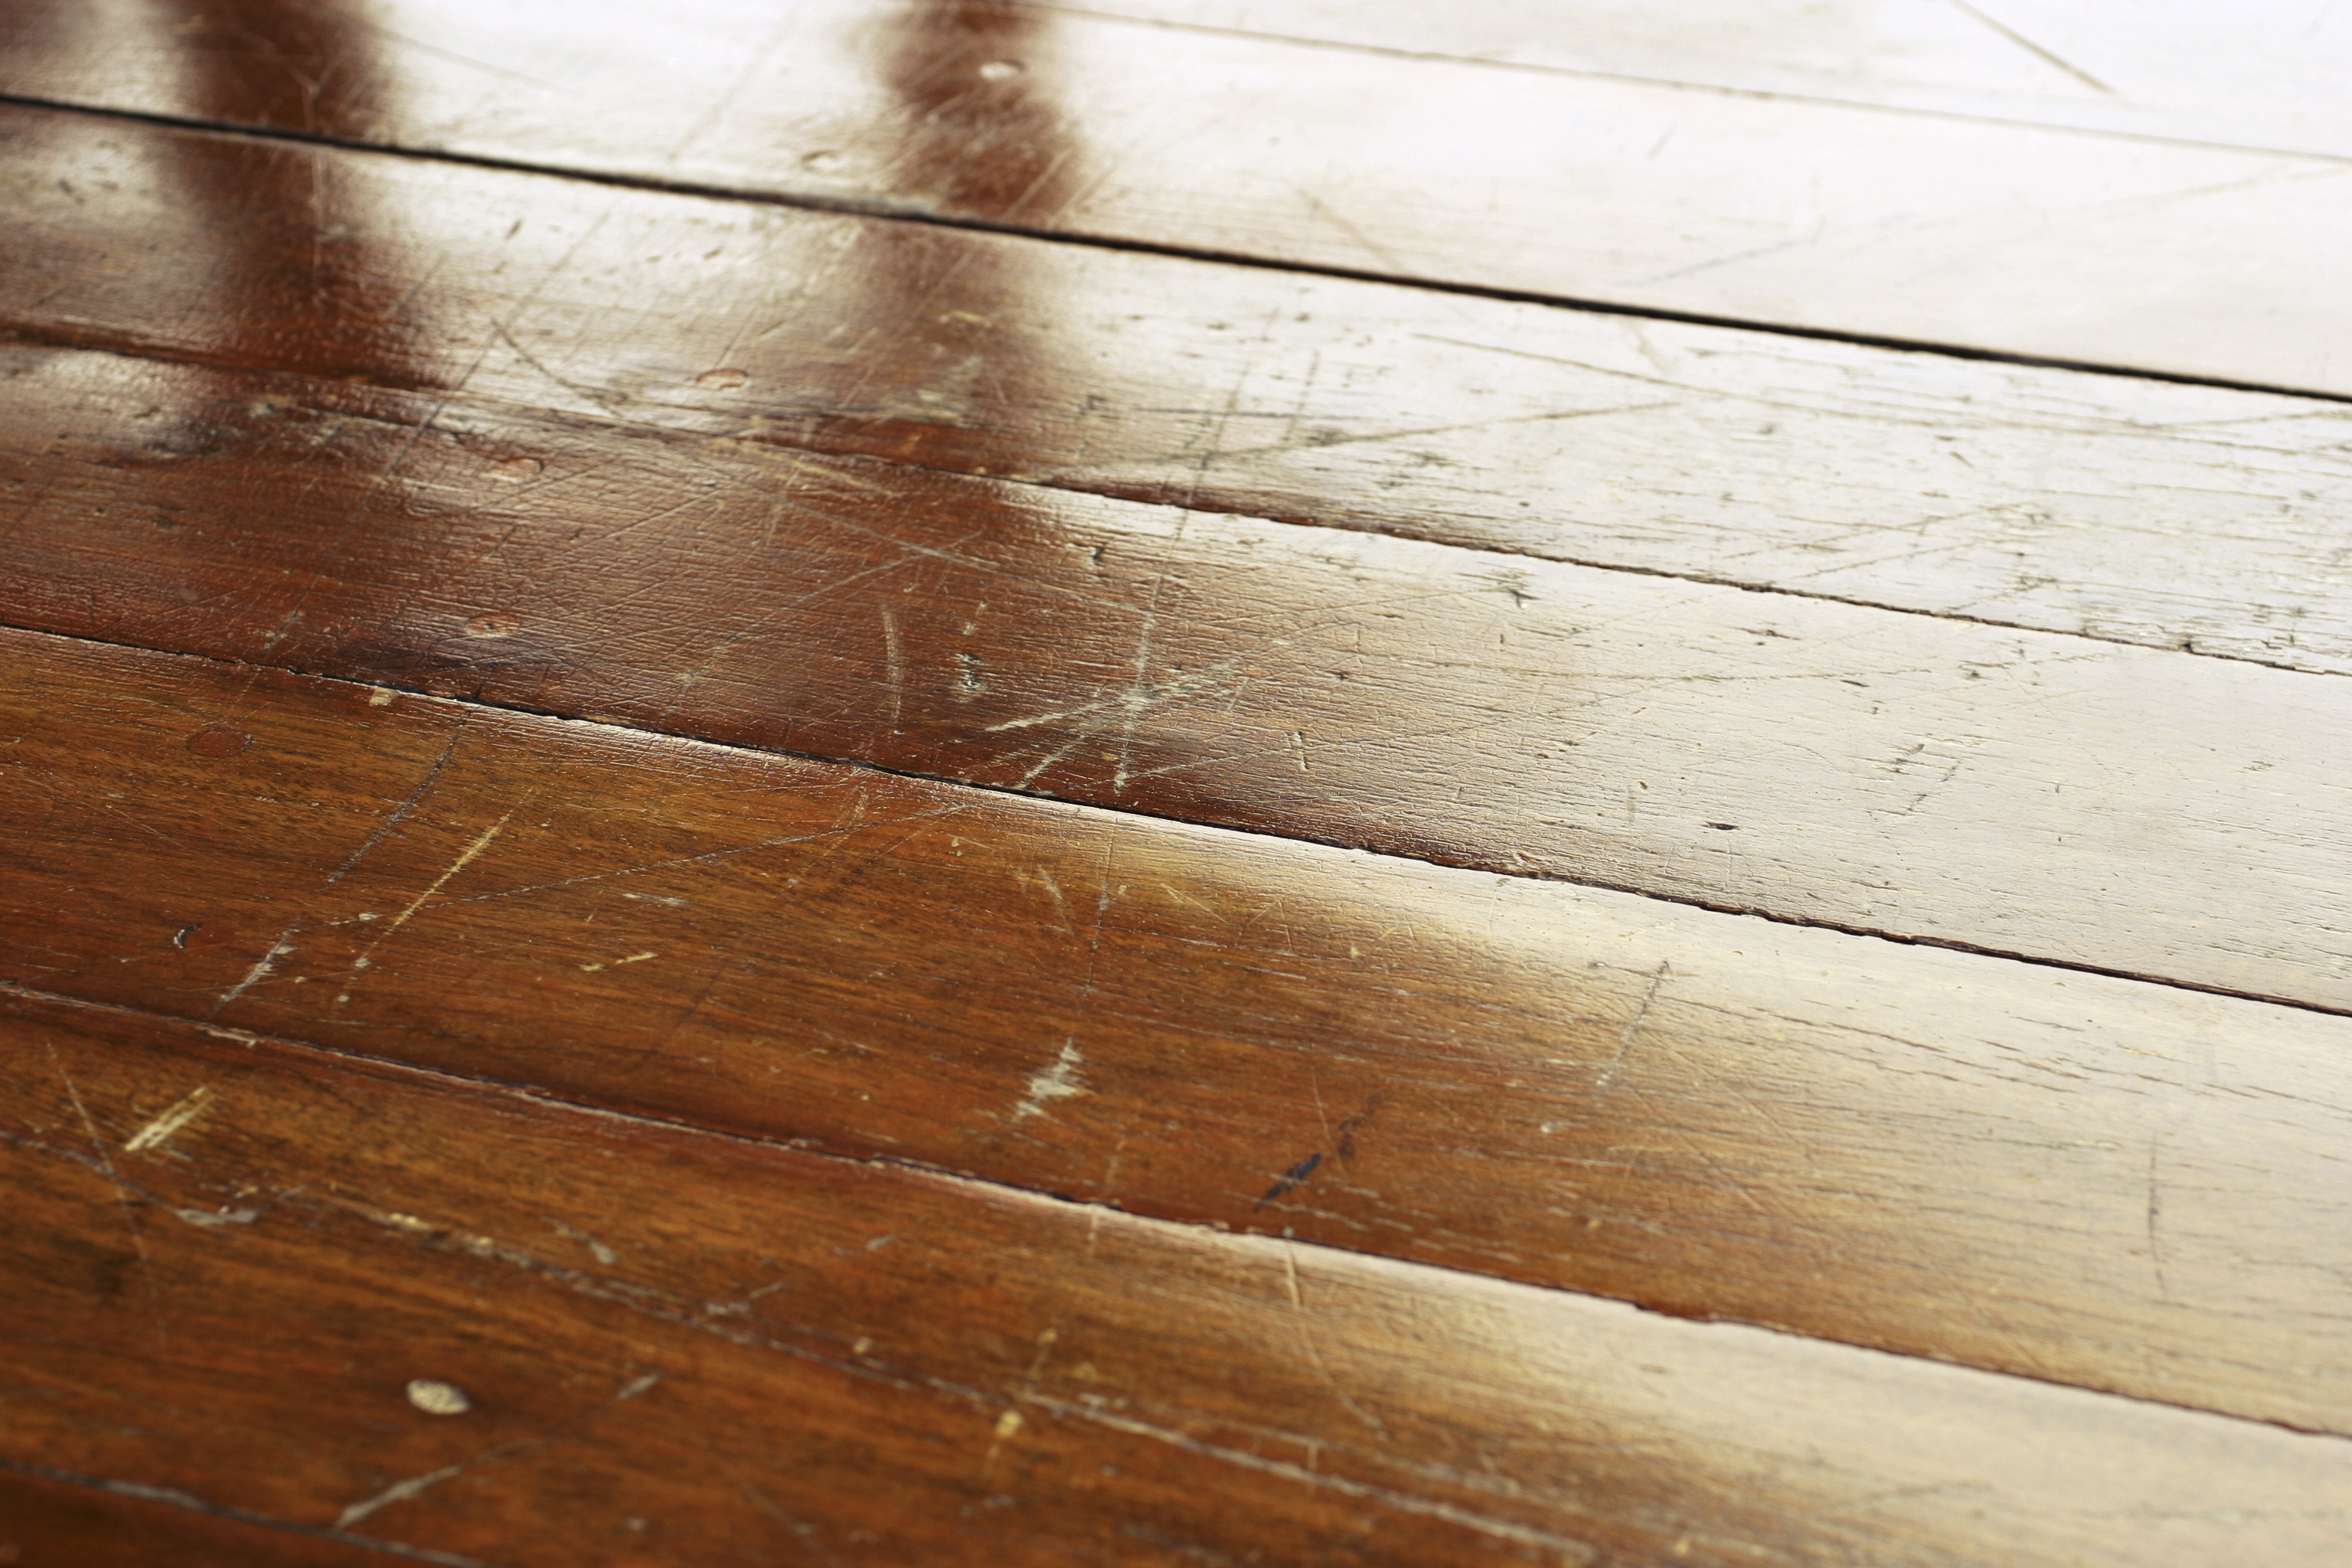 Kitchen Floor Runner 9 Things Youre Doing To Ruin Your Hardwood Floors Without Even